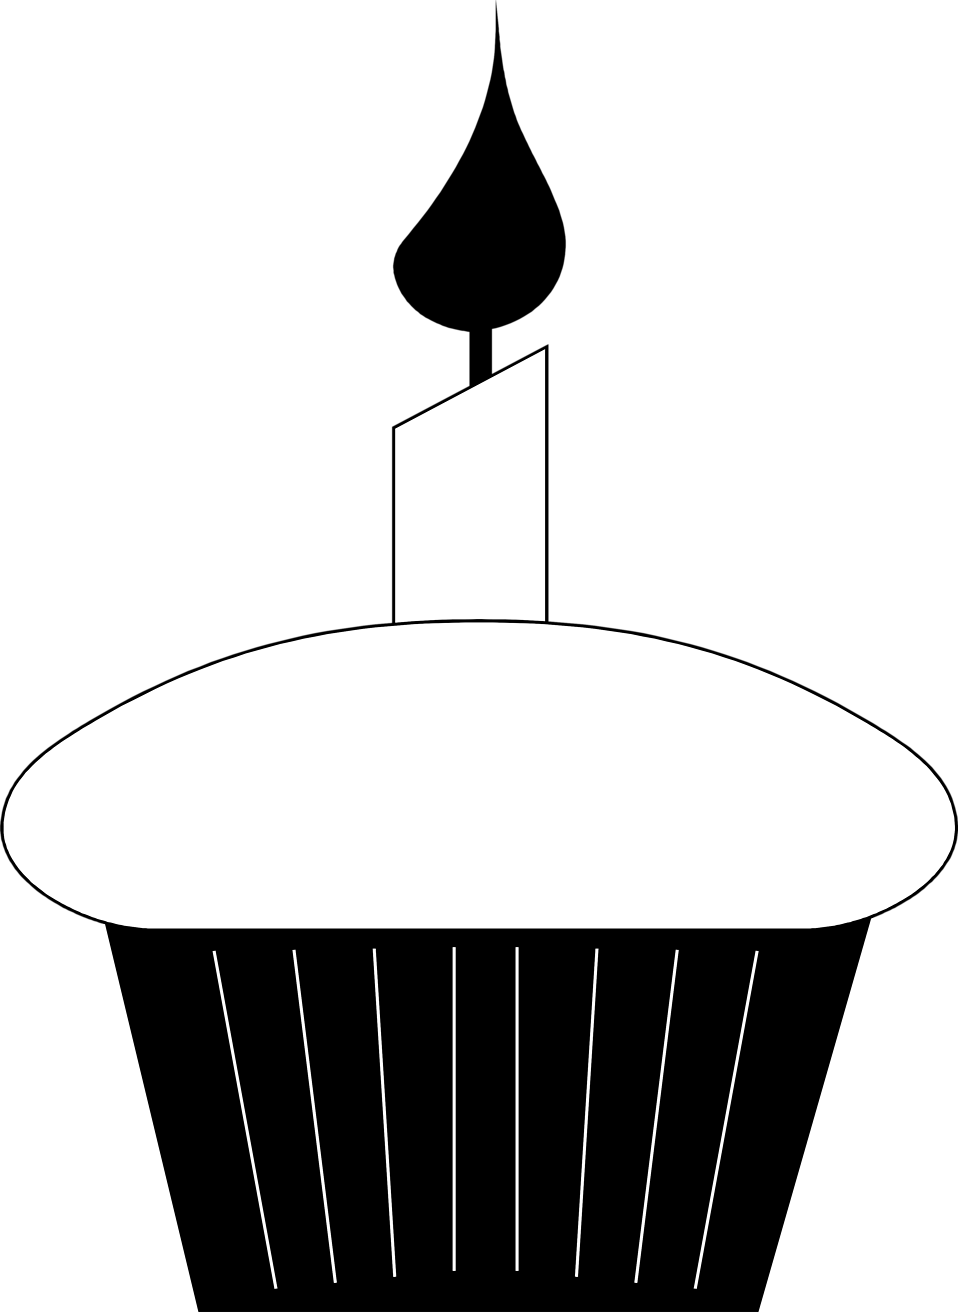 Cupcake 2 candles clipart black and white banner royalty free stock Candle Clipart Black And White | Free download best Candle ... banner royalty free stock